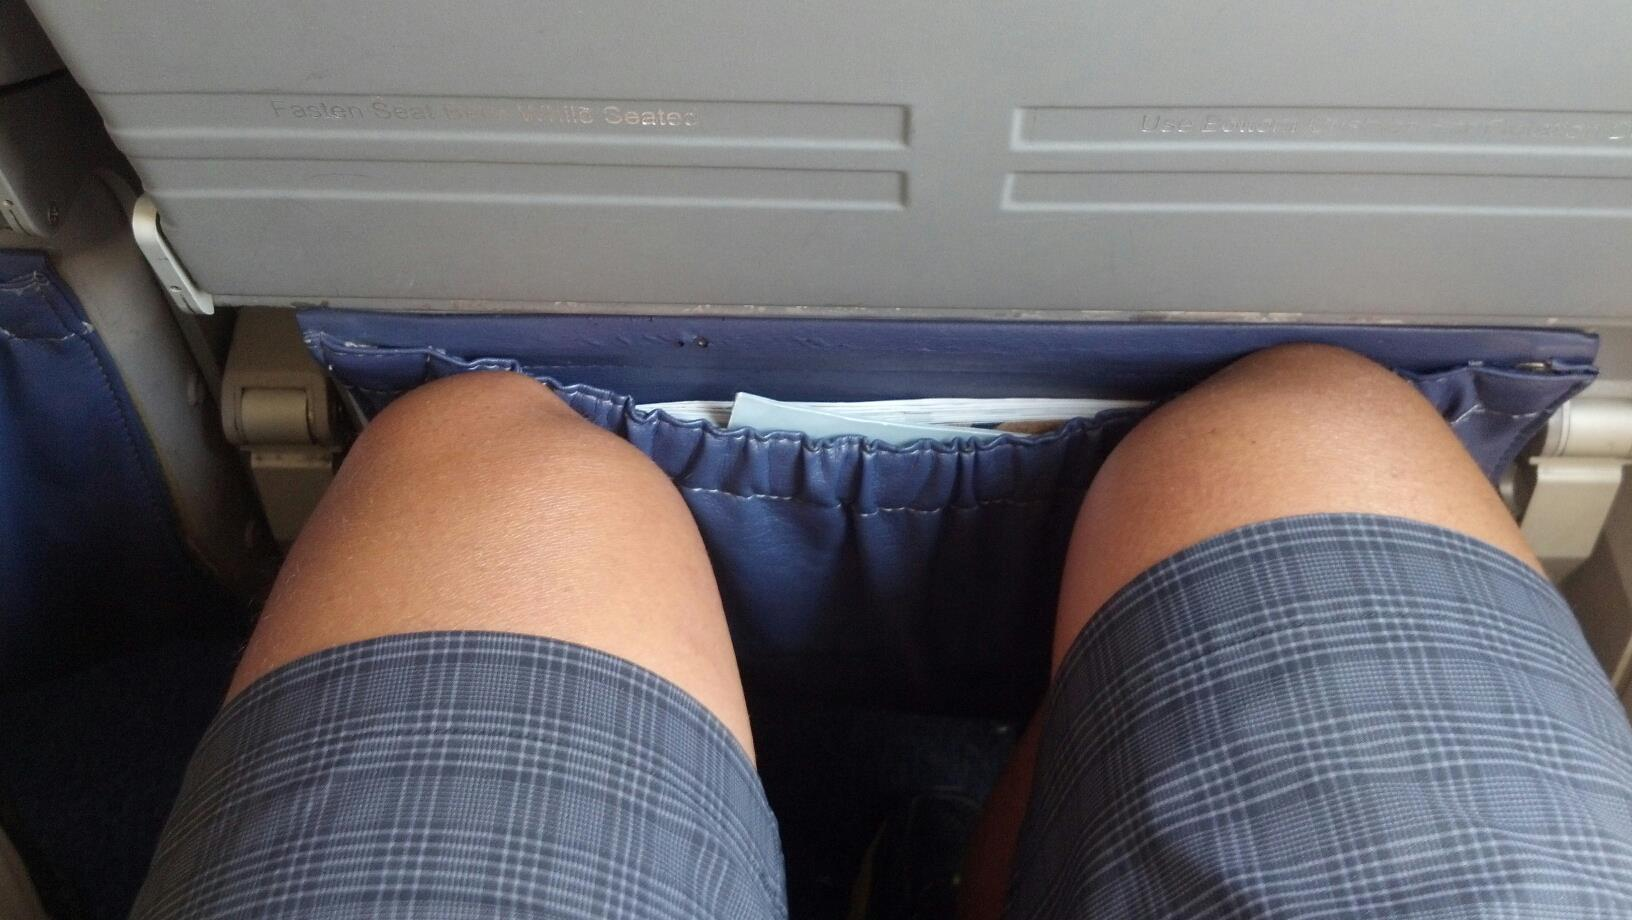 Tall People are Uncomfortable on Planes. HAHA!